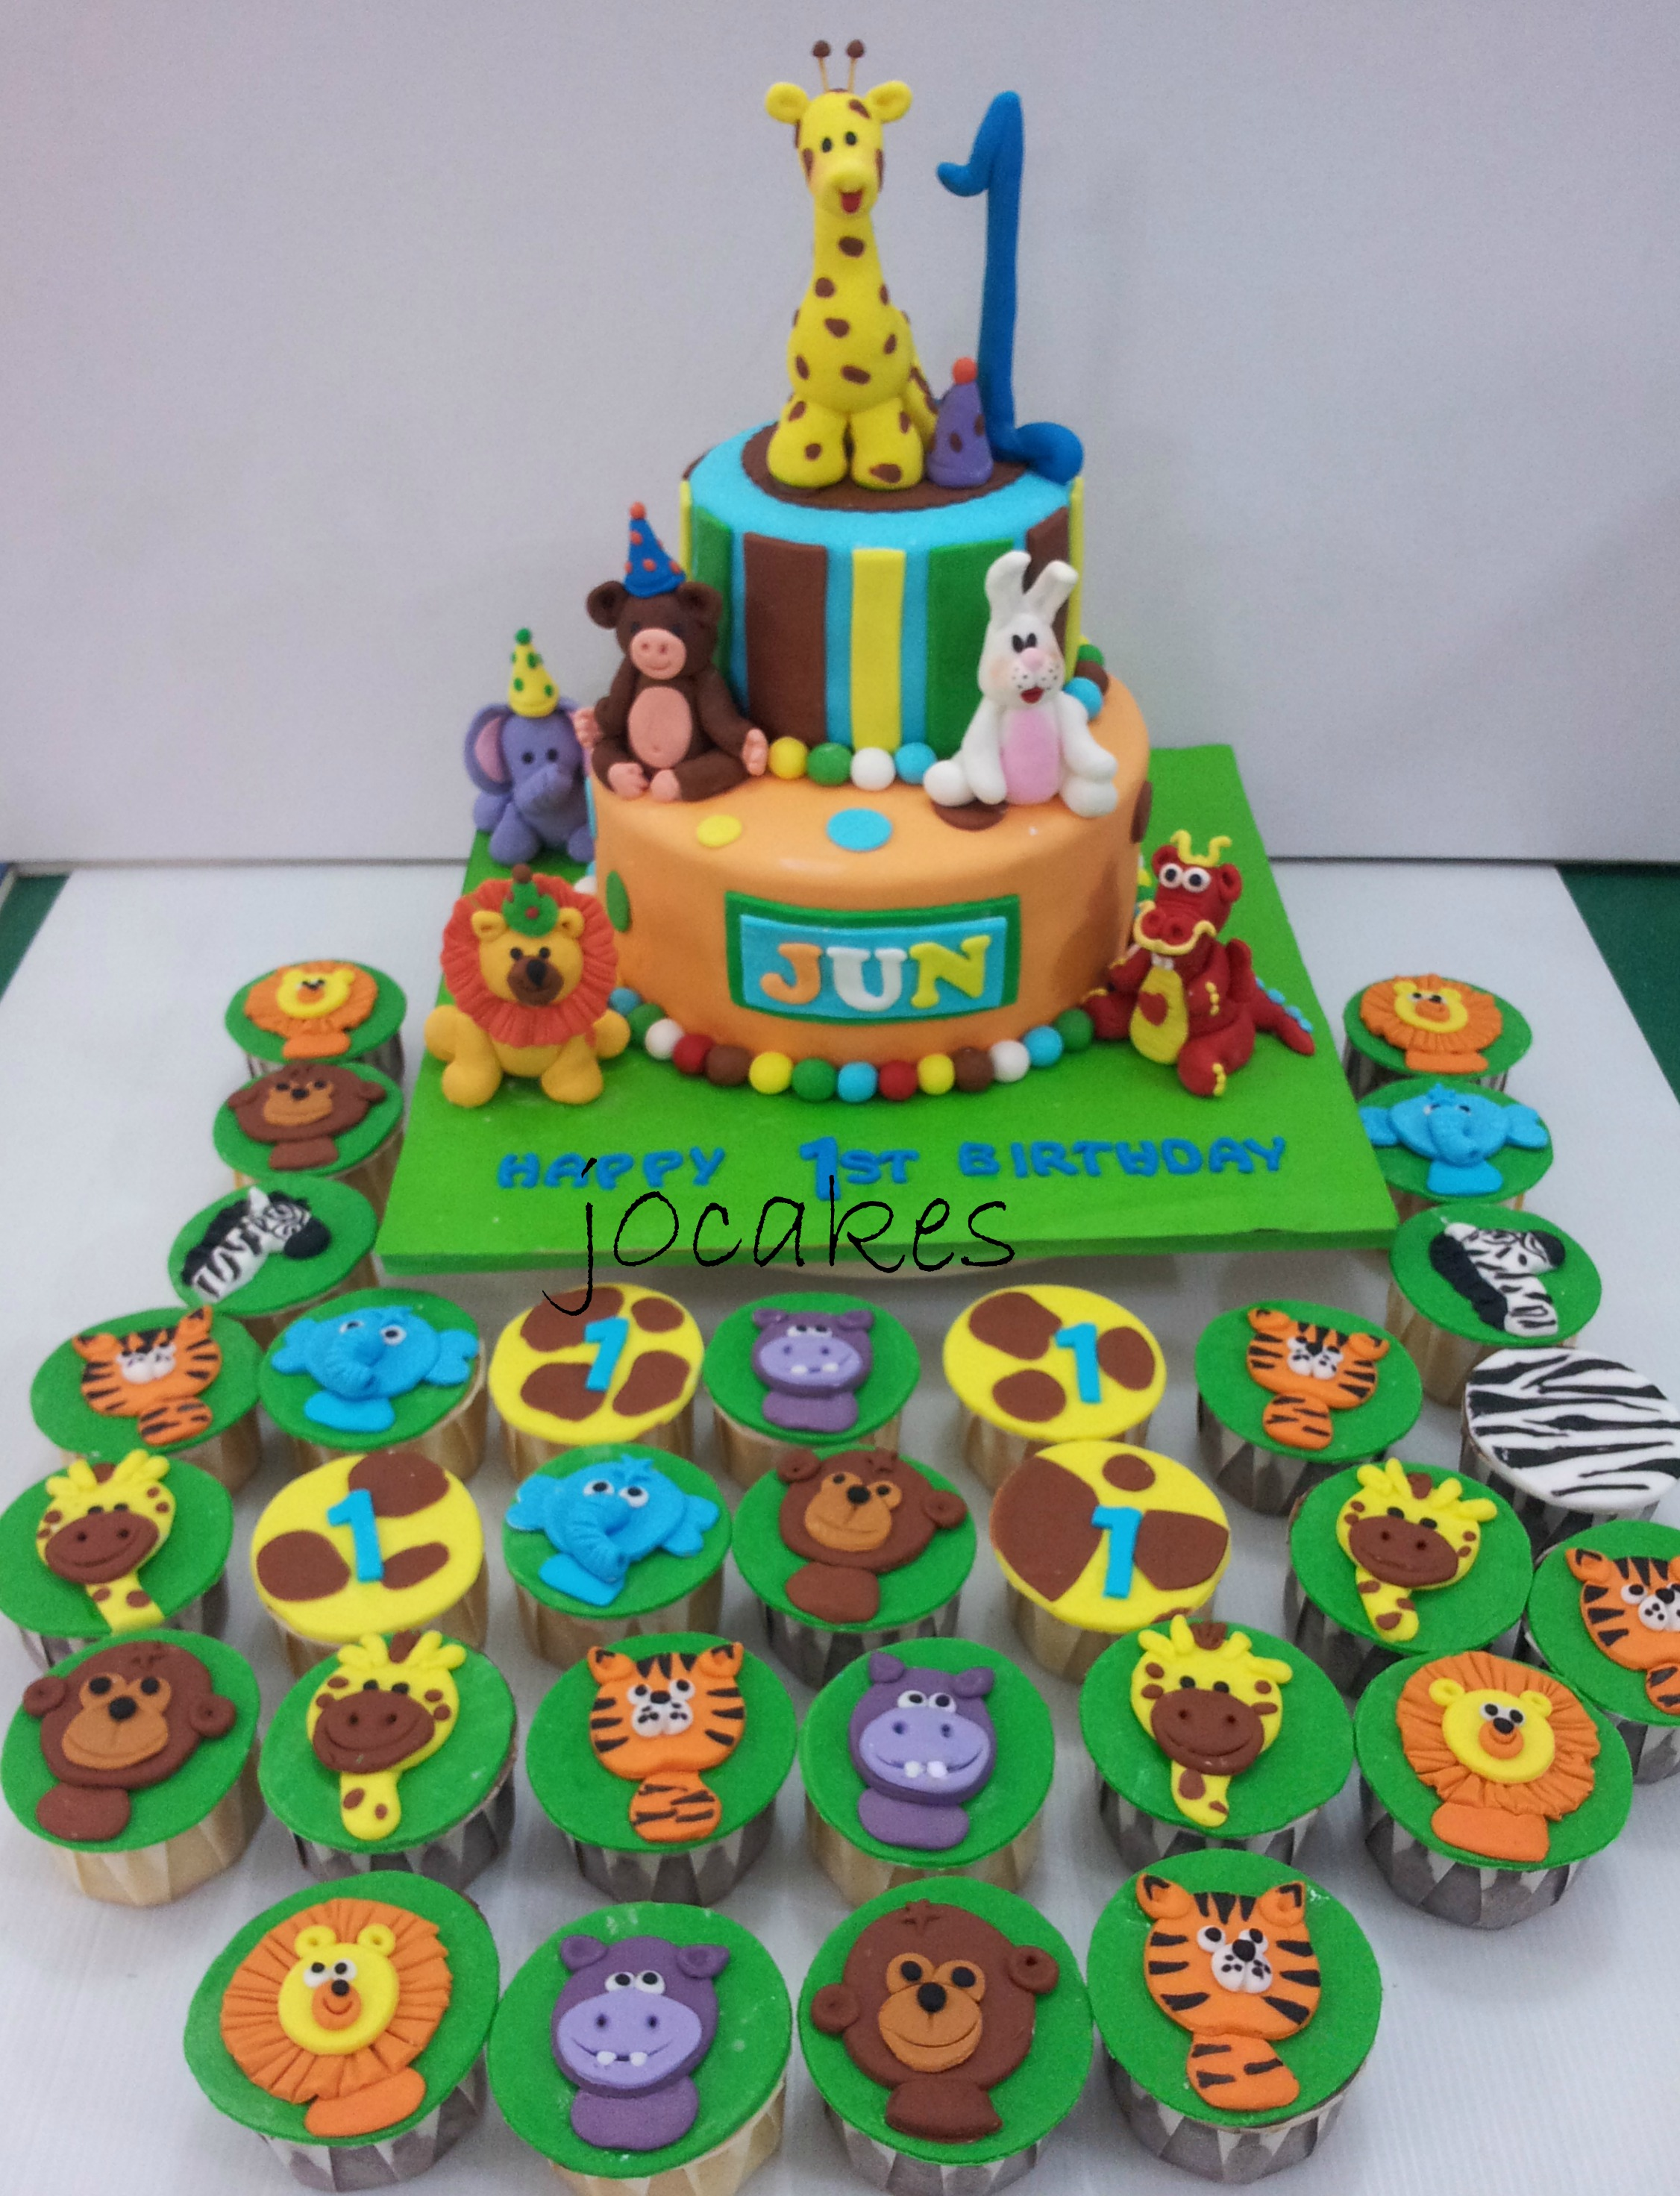 13 birthday cakes for 2 year old boy animals photo - jungle animal